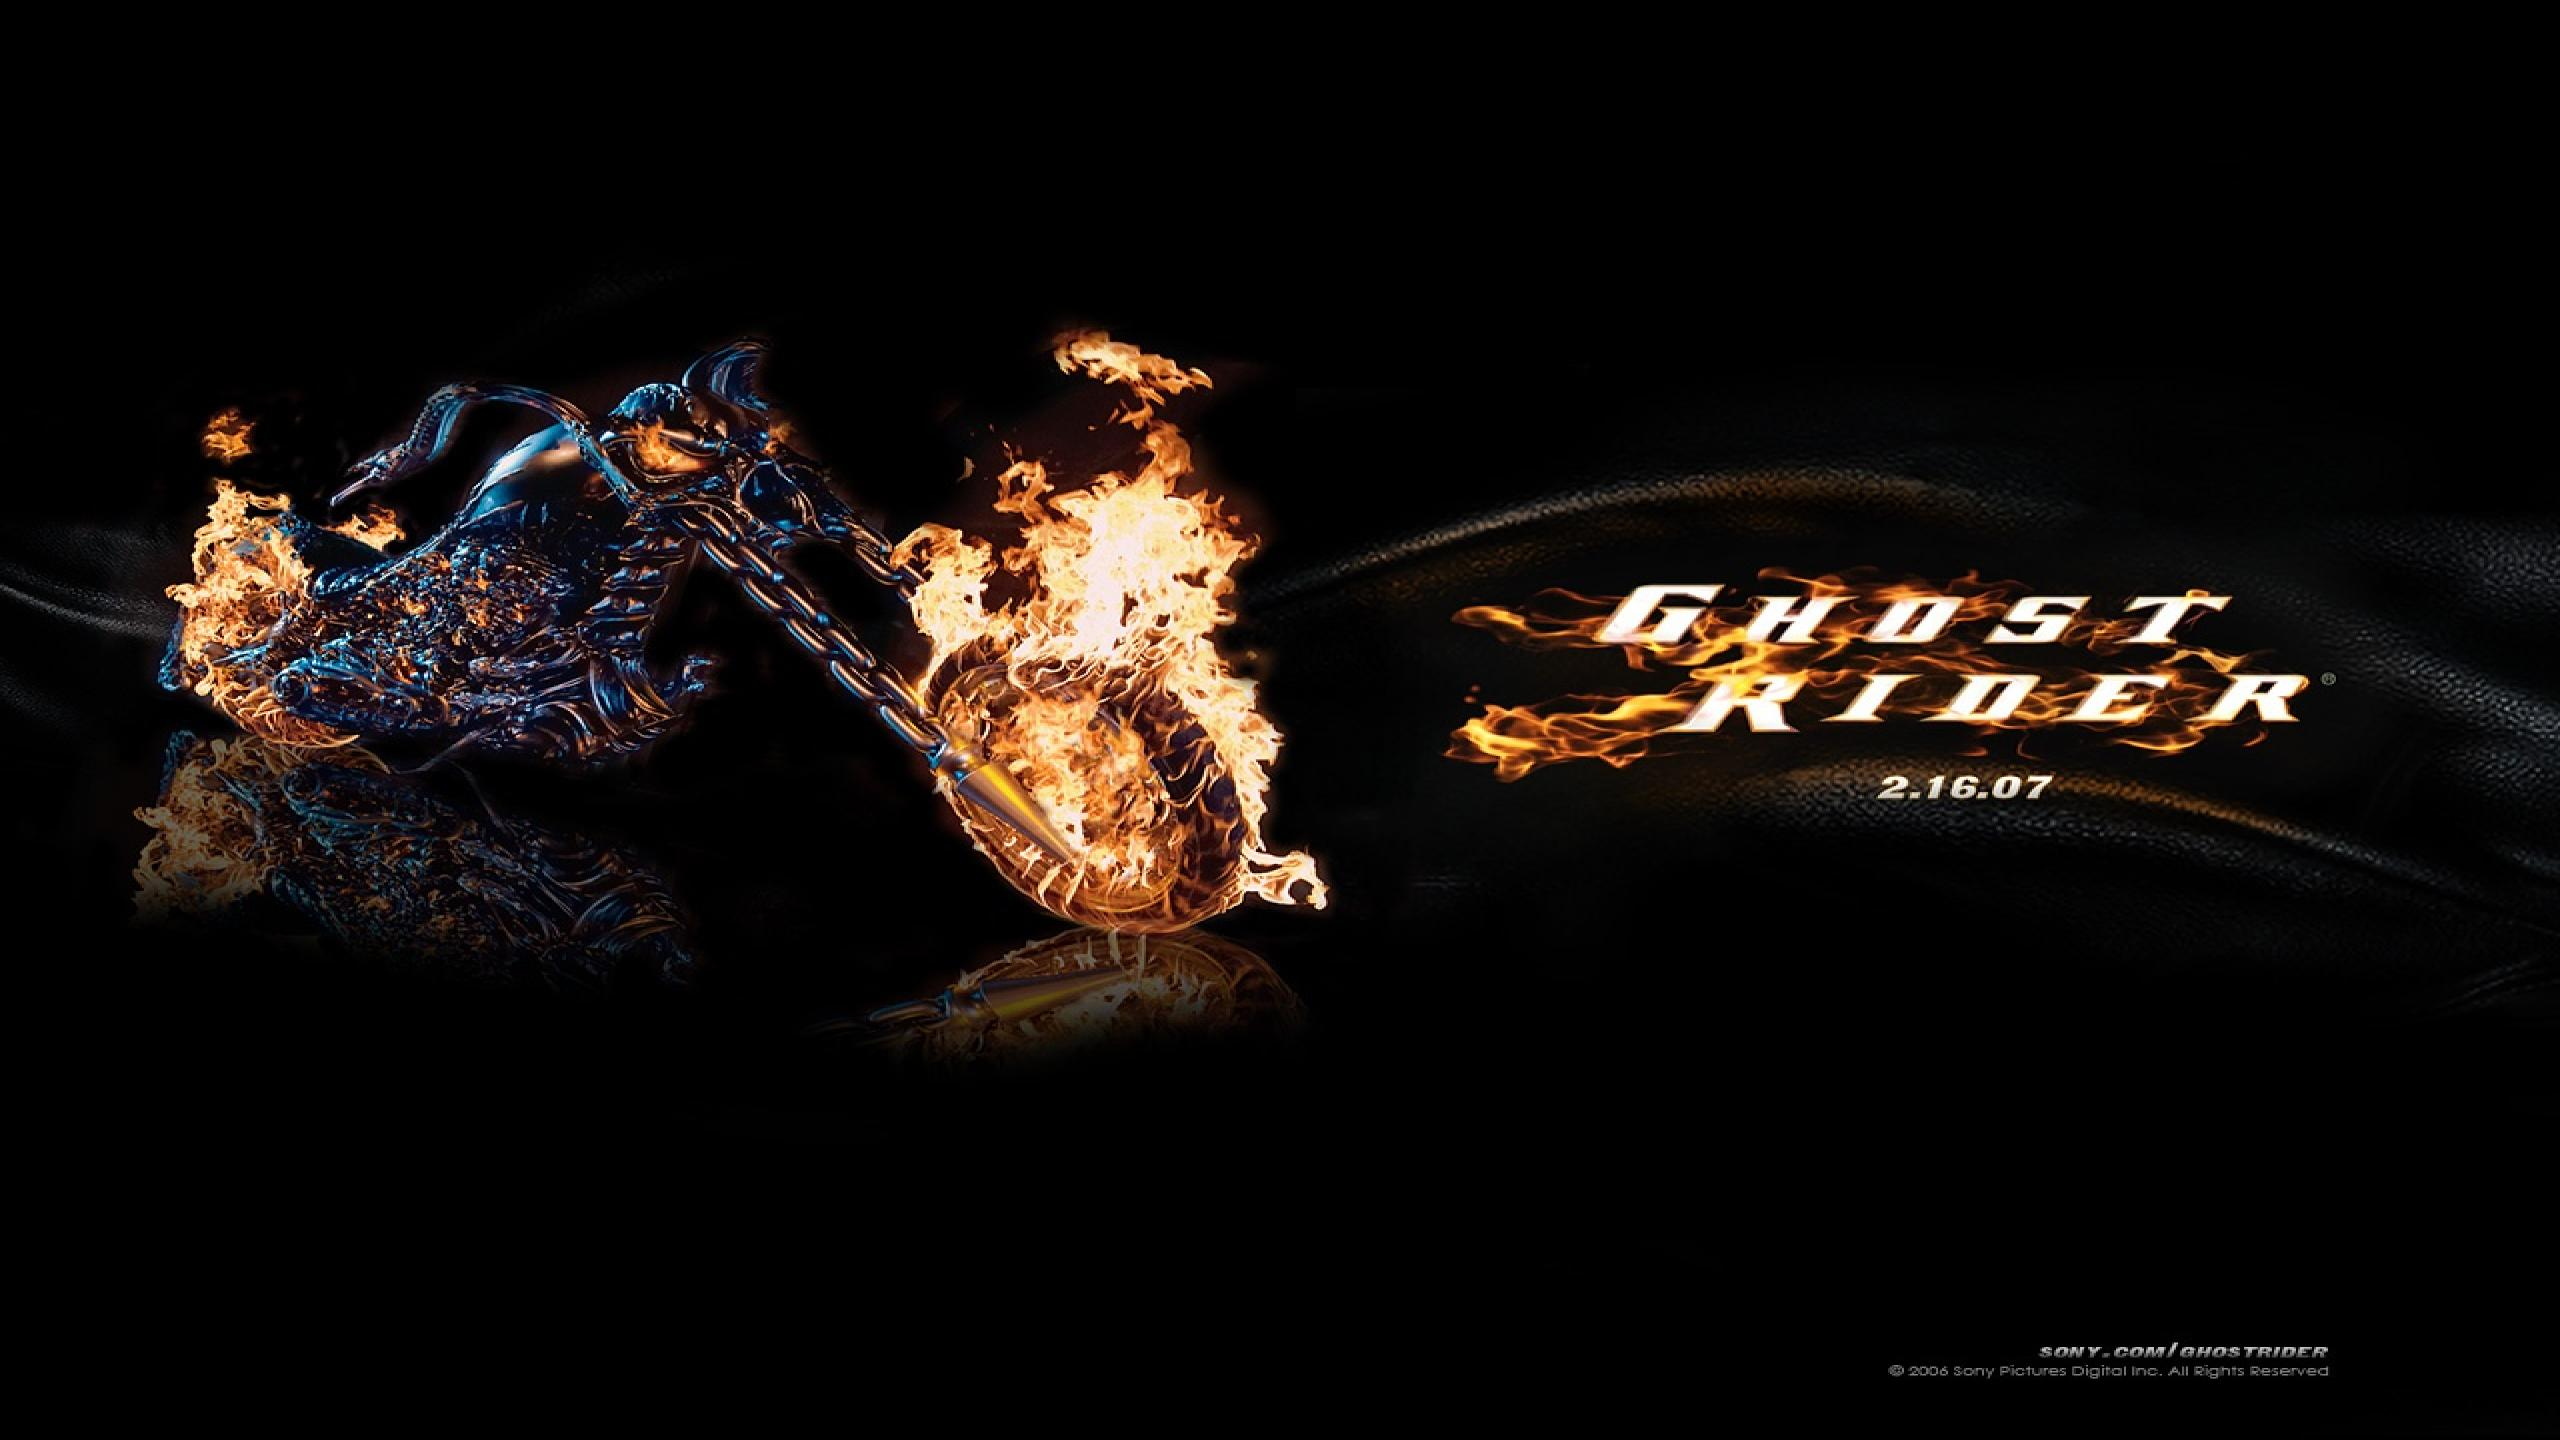 Ghost Rider HD Wallpapers 2560x1440 Movie Wallpapers 2560x1440 2560x1440